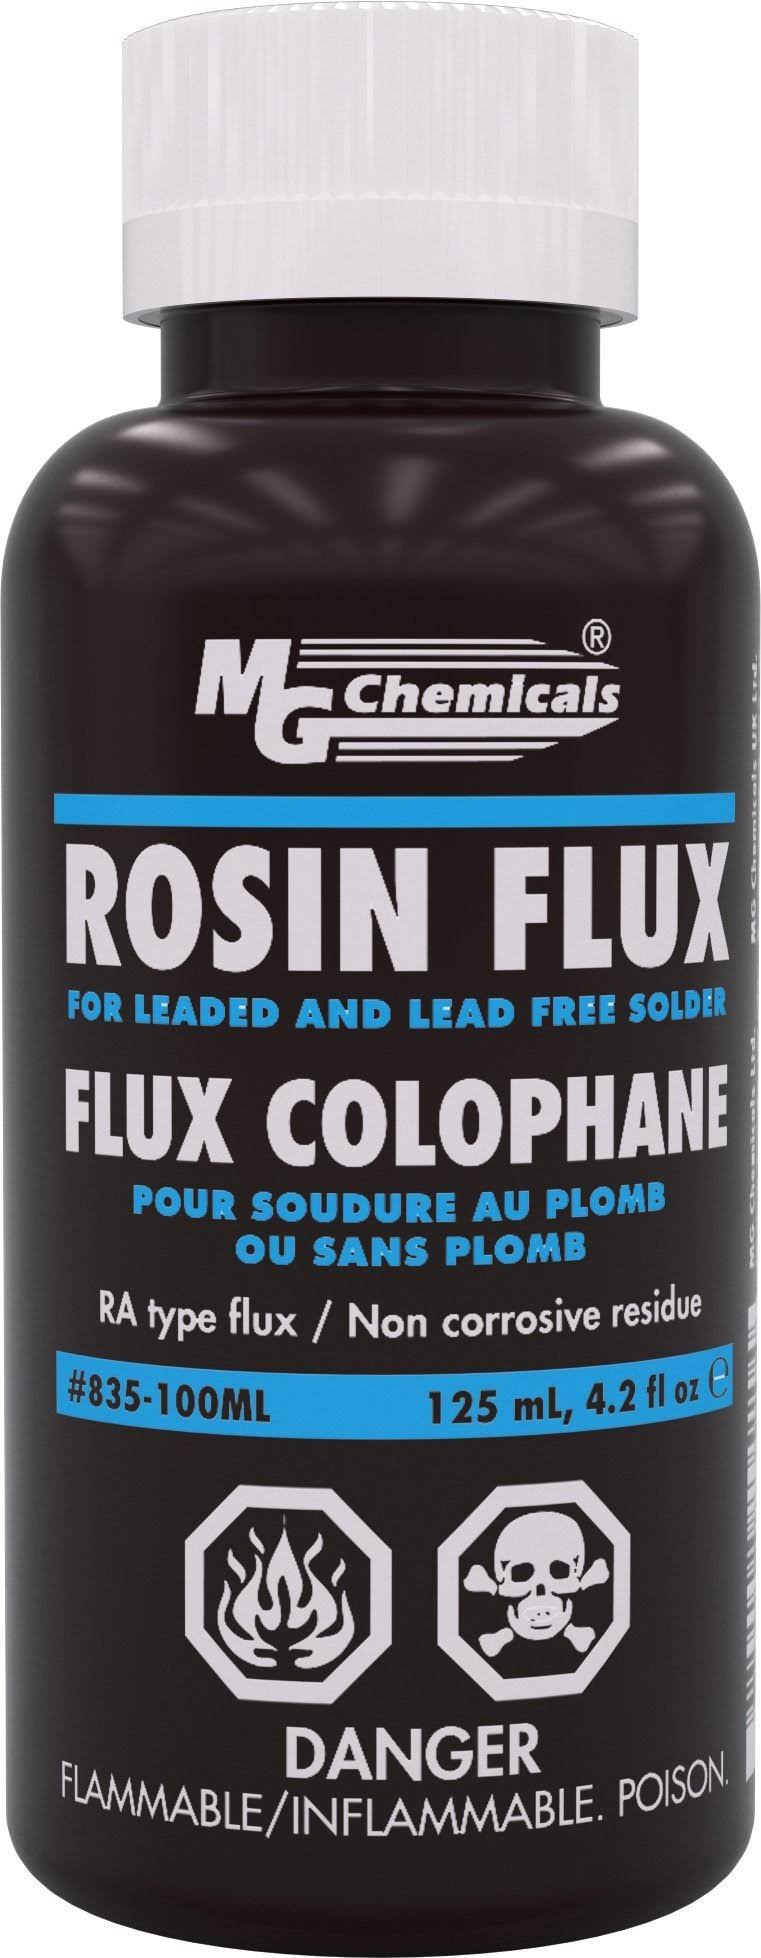 mg Chemicals 835-100ML Liquid Rosin Flux